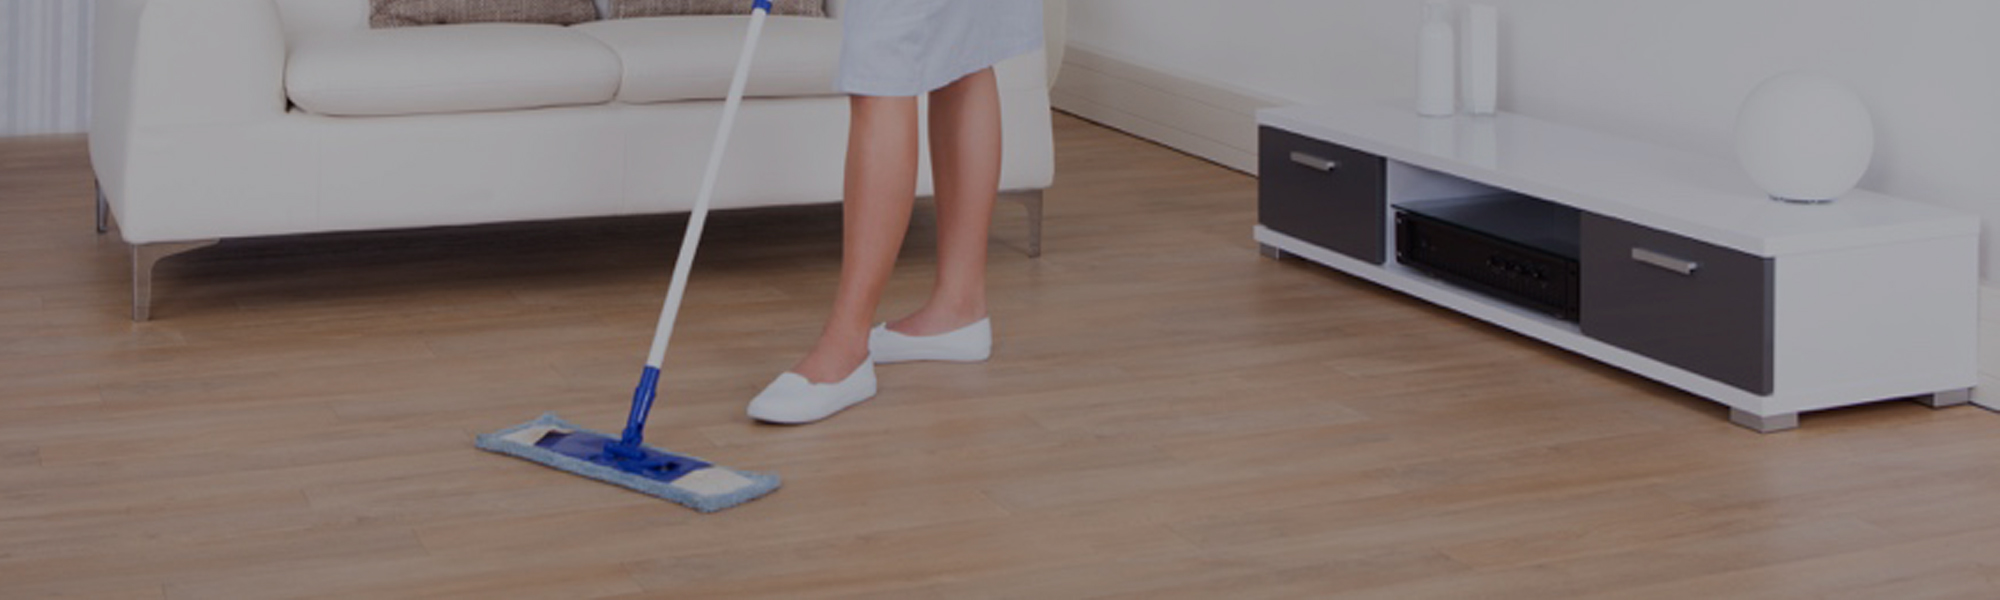 House Domestic cleaning services